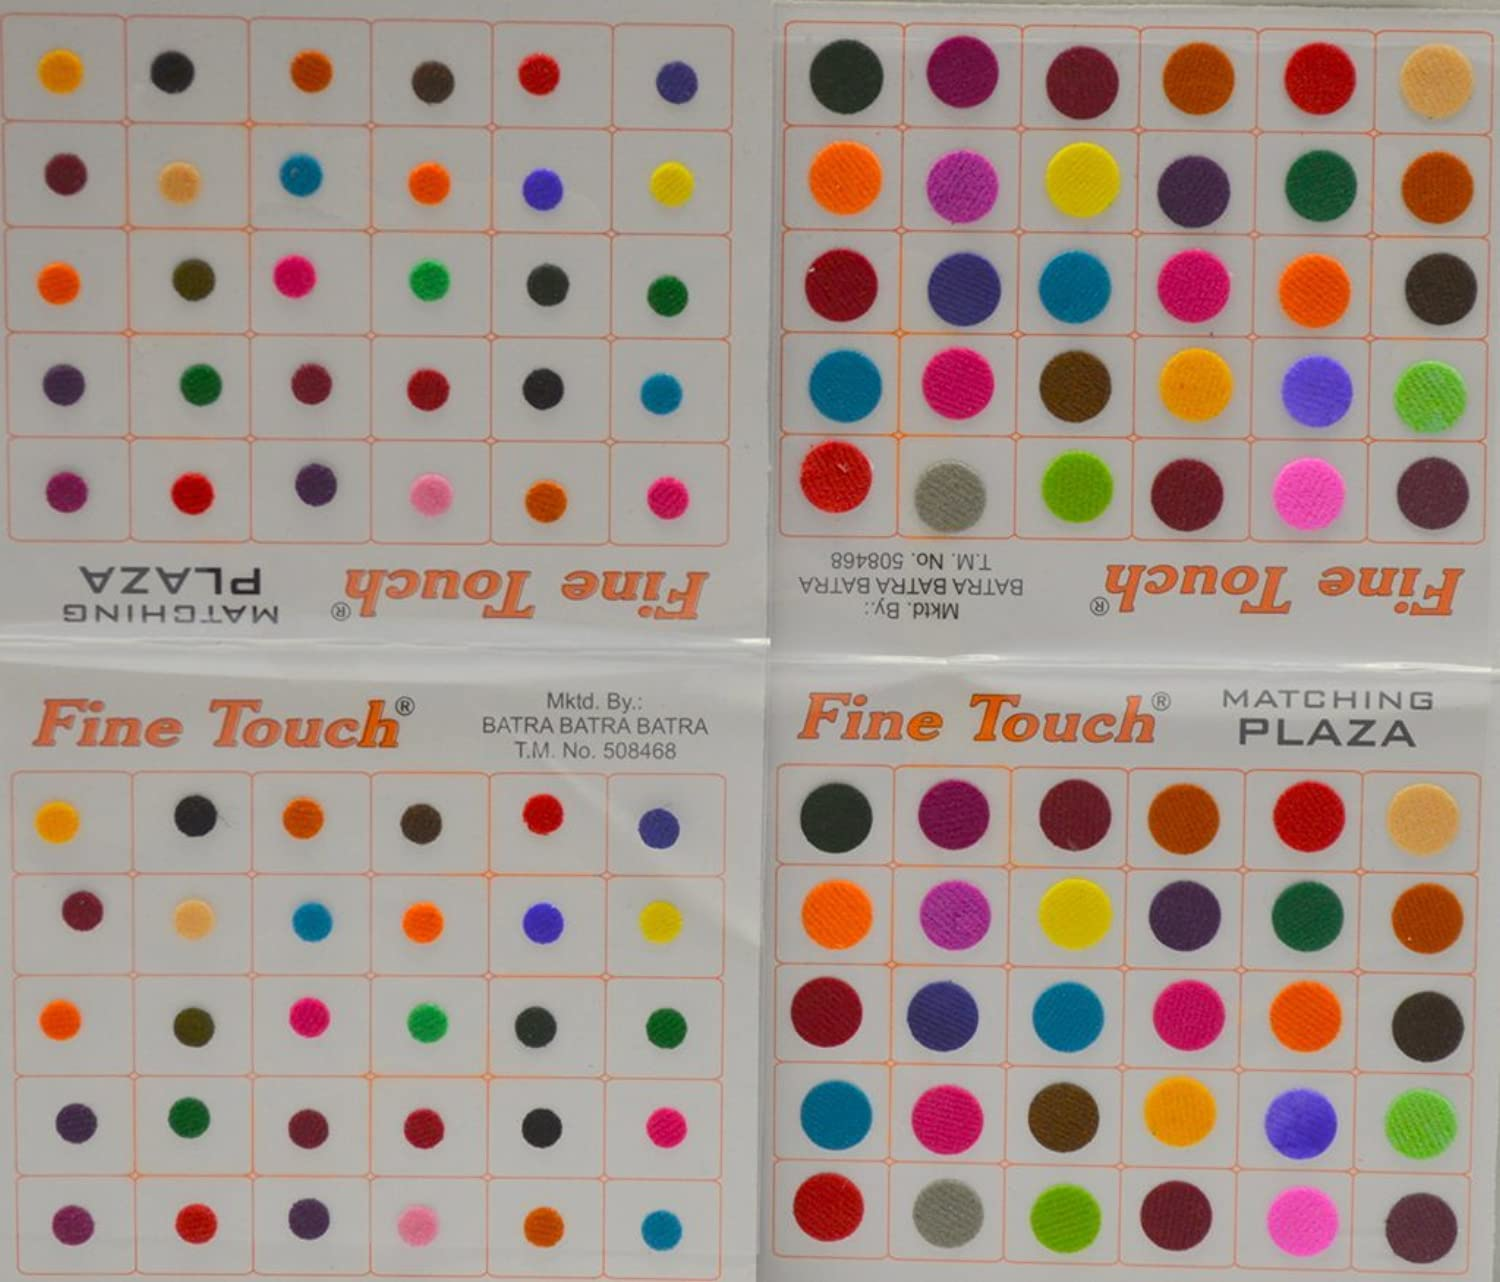 Multi-color Velvet Dot Bindi Tattoo Assorted Colors 120 Stickers Adhesive Body Jewelry By Golden India P3